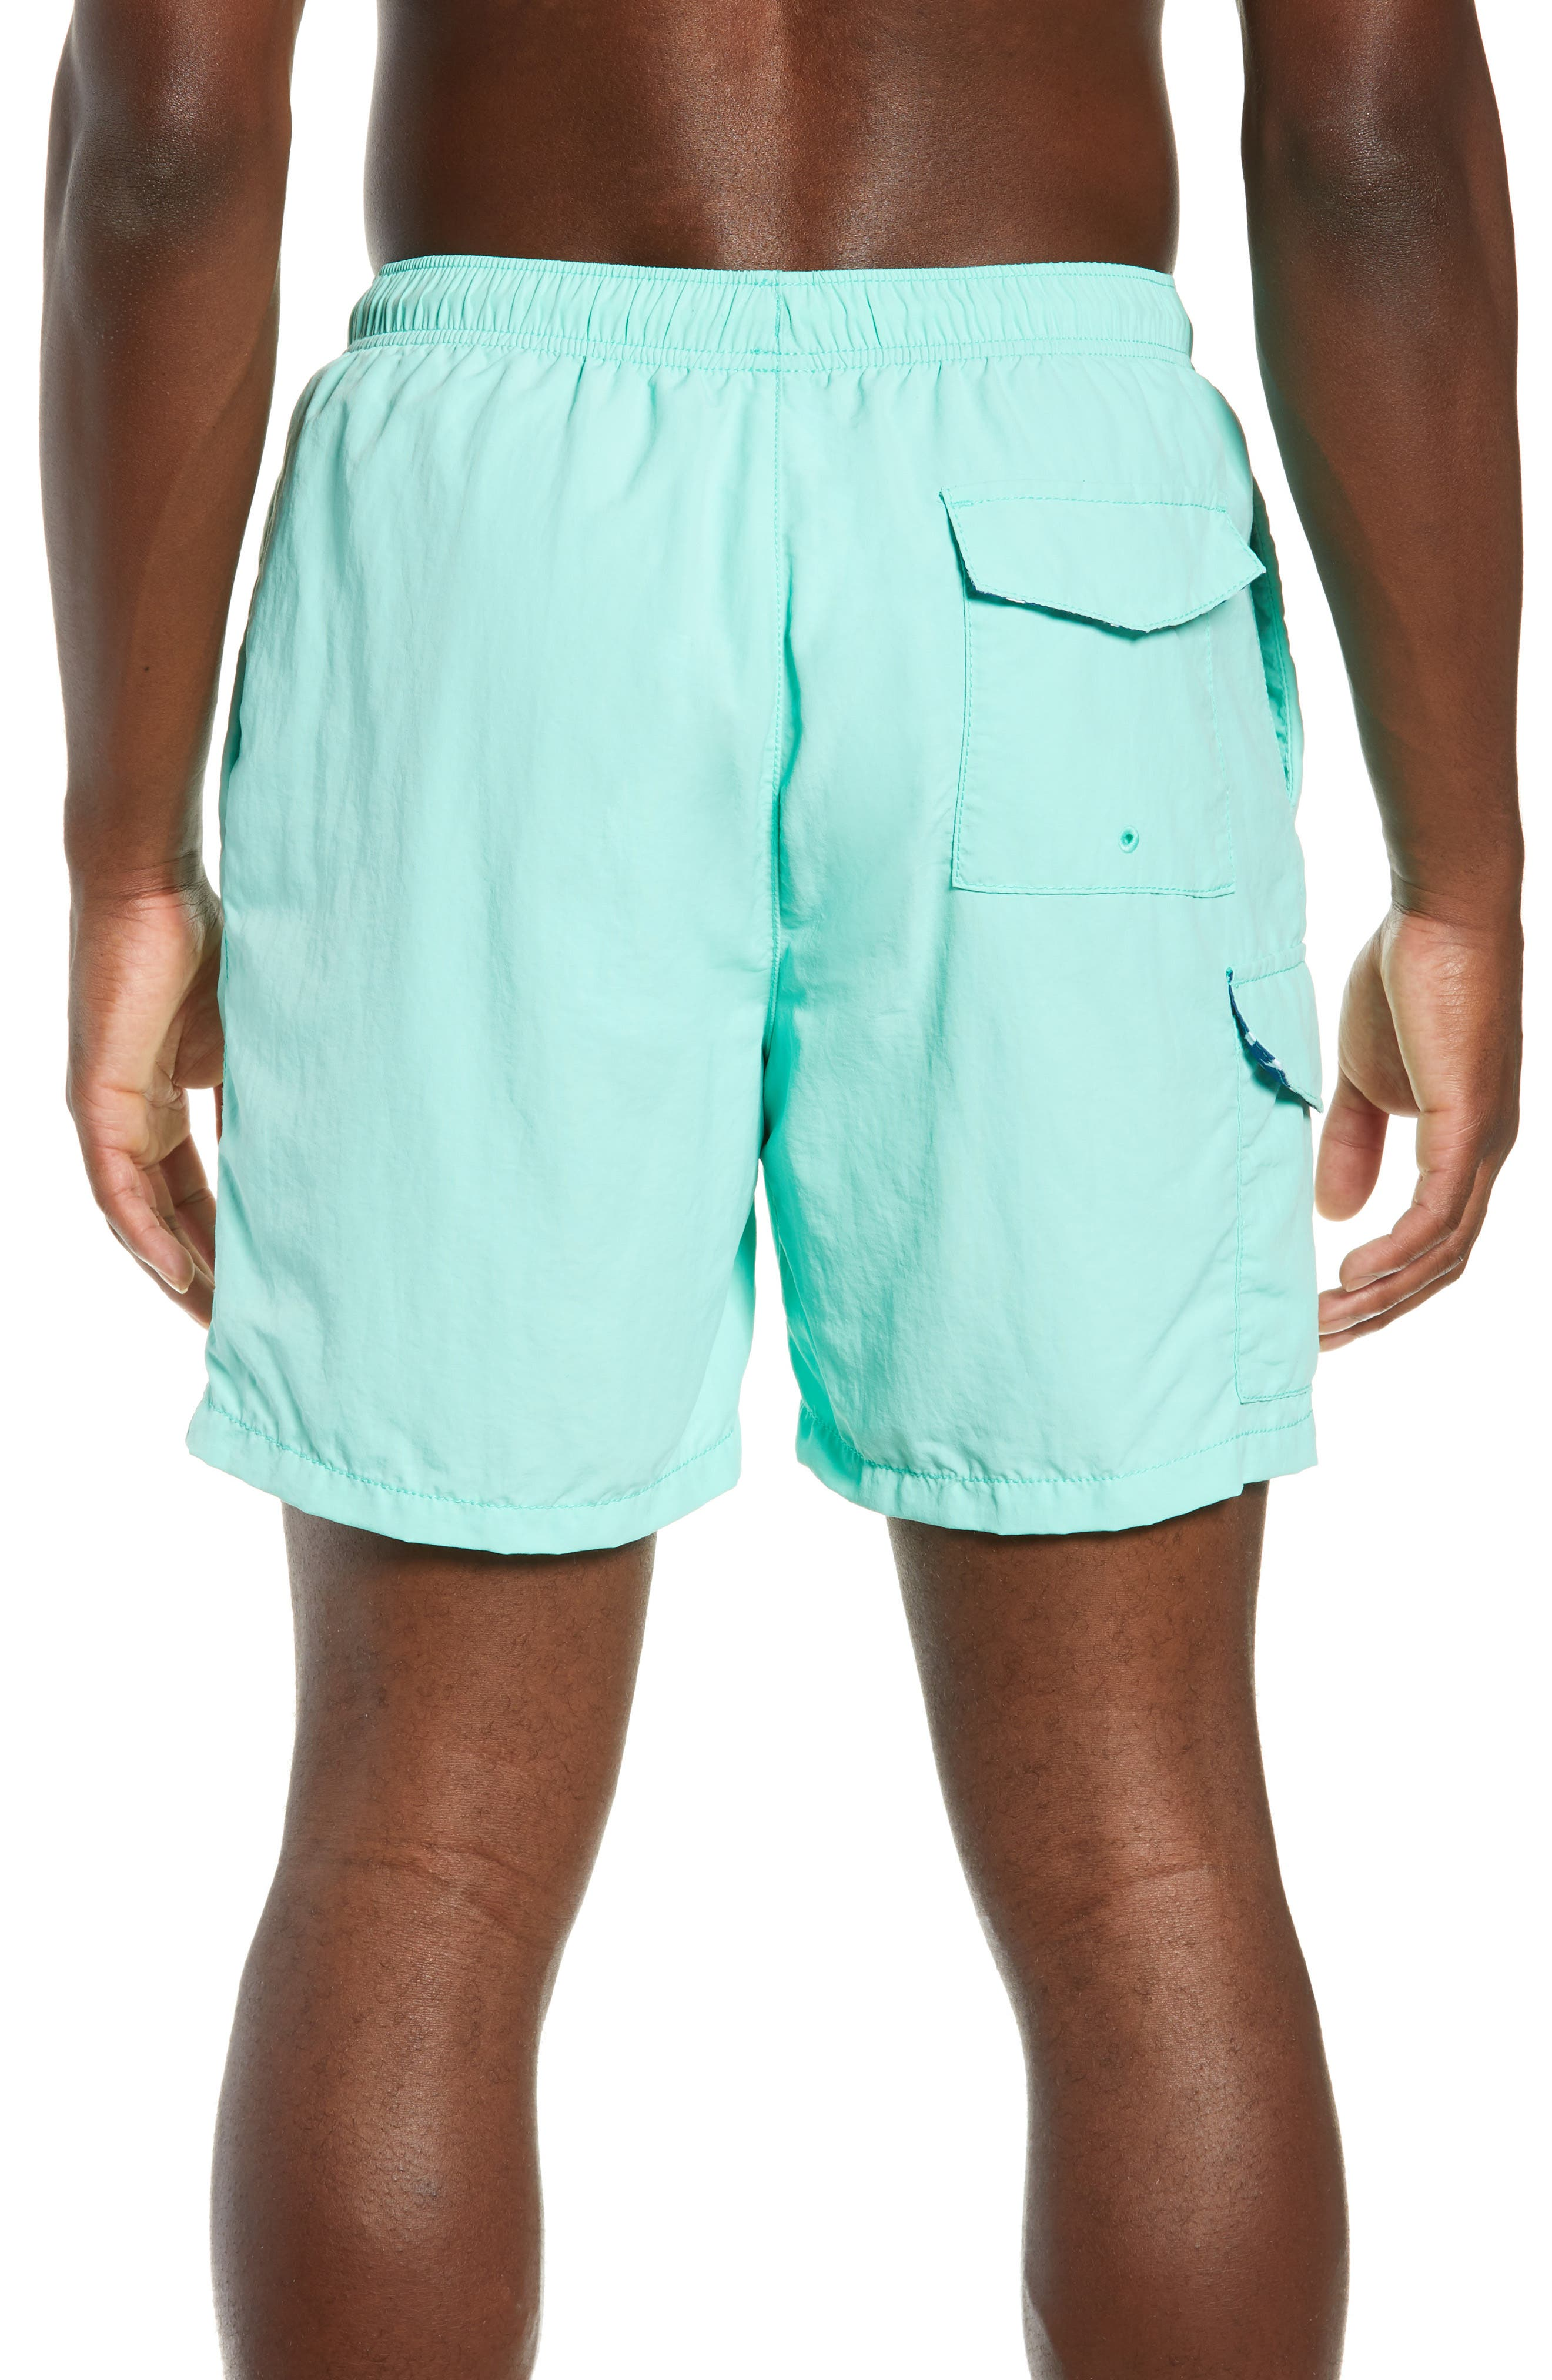 Naples Coast Swim Trunks,                             Alternate thumbnail 2, color,                             302